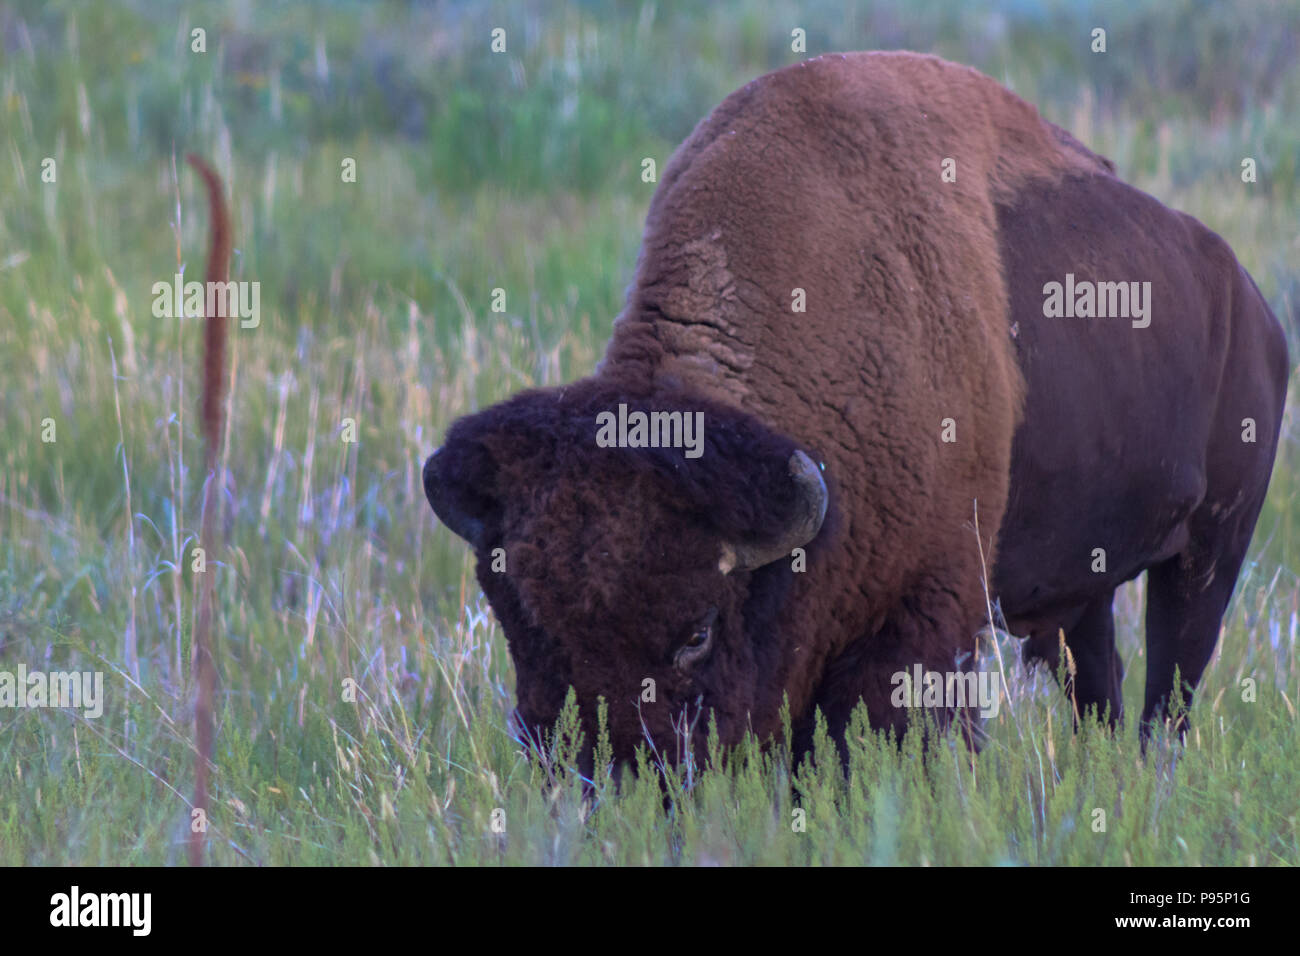 Bison grazing grass on the prarie keeping a watchful eye open. - Stock Image